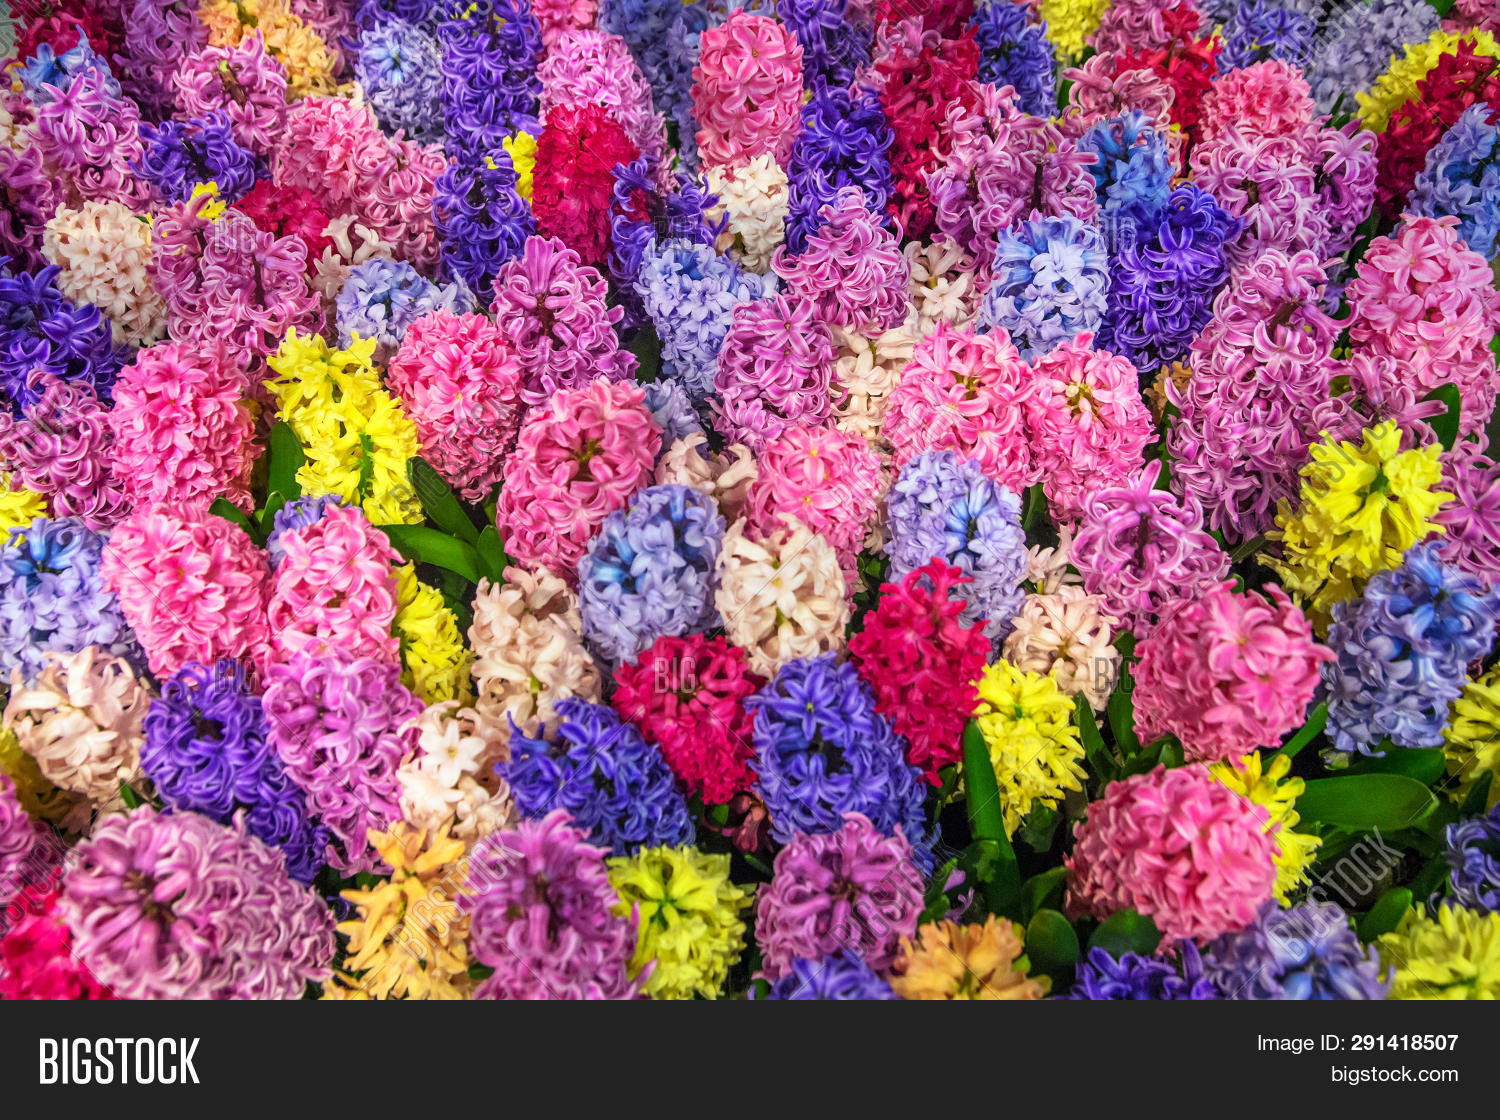 Multicolored Bright Image Photo Free Trial Bigstock